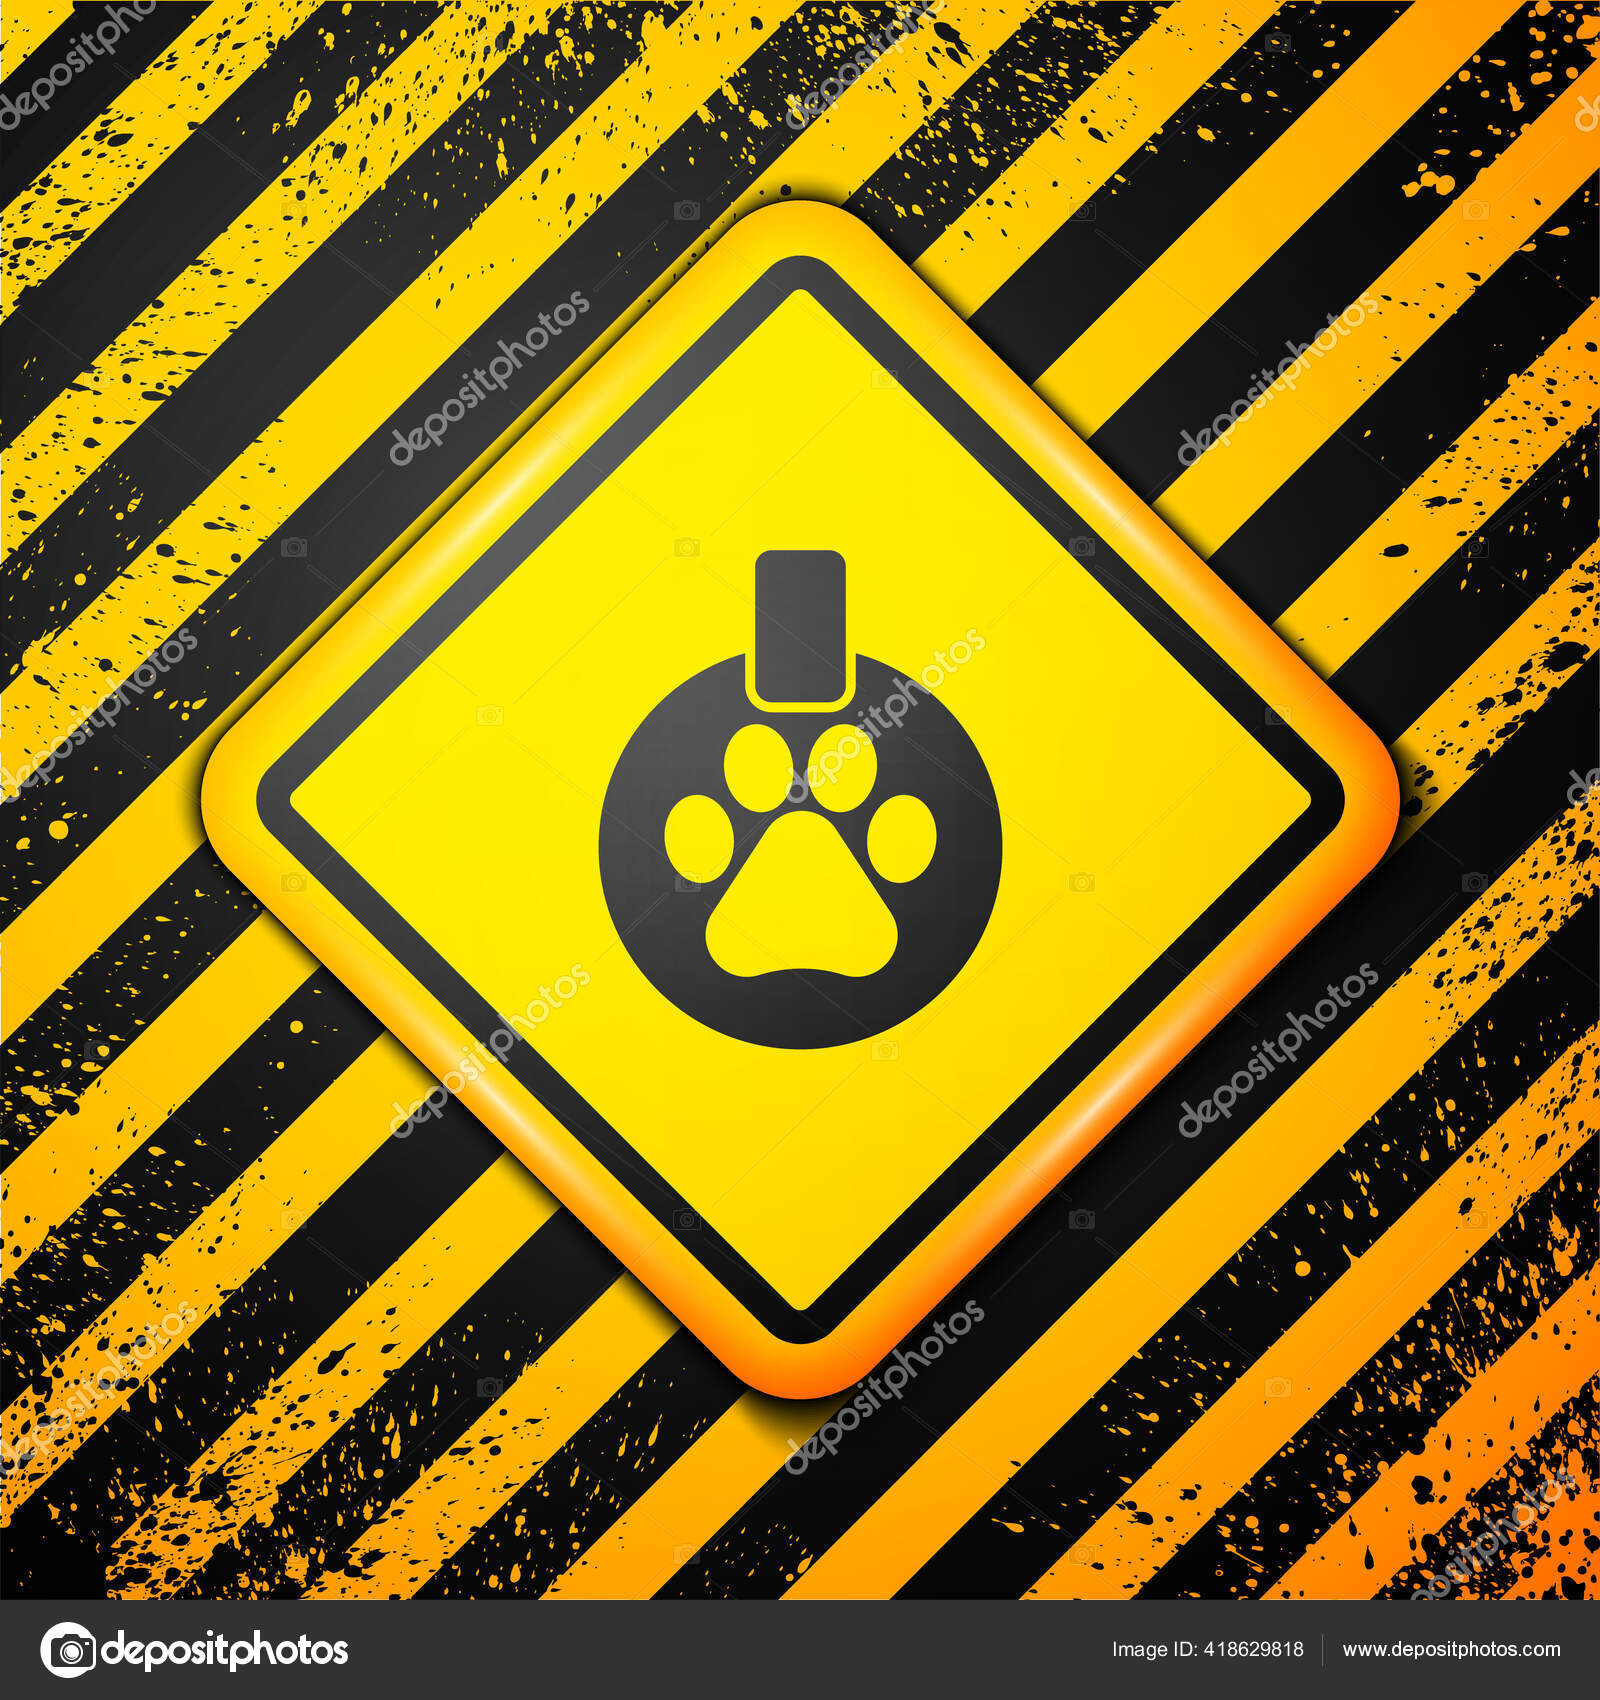 Black Paw Print Over the Collar